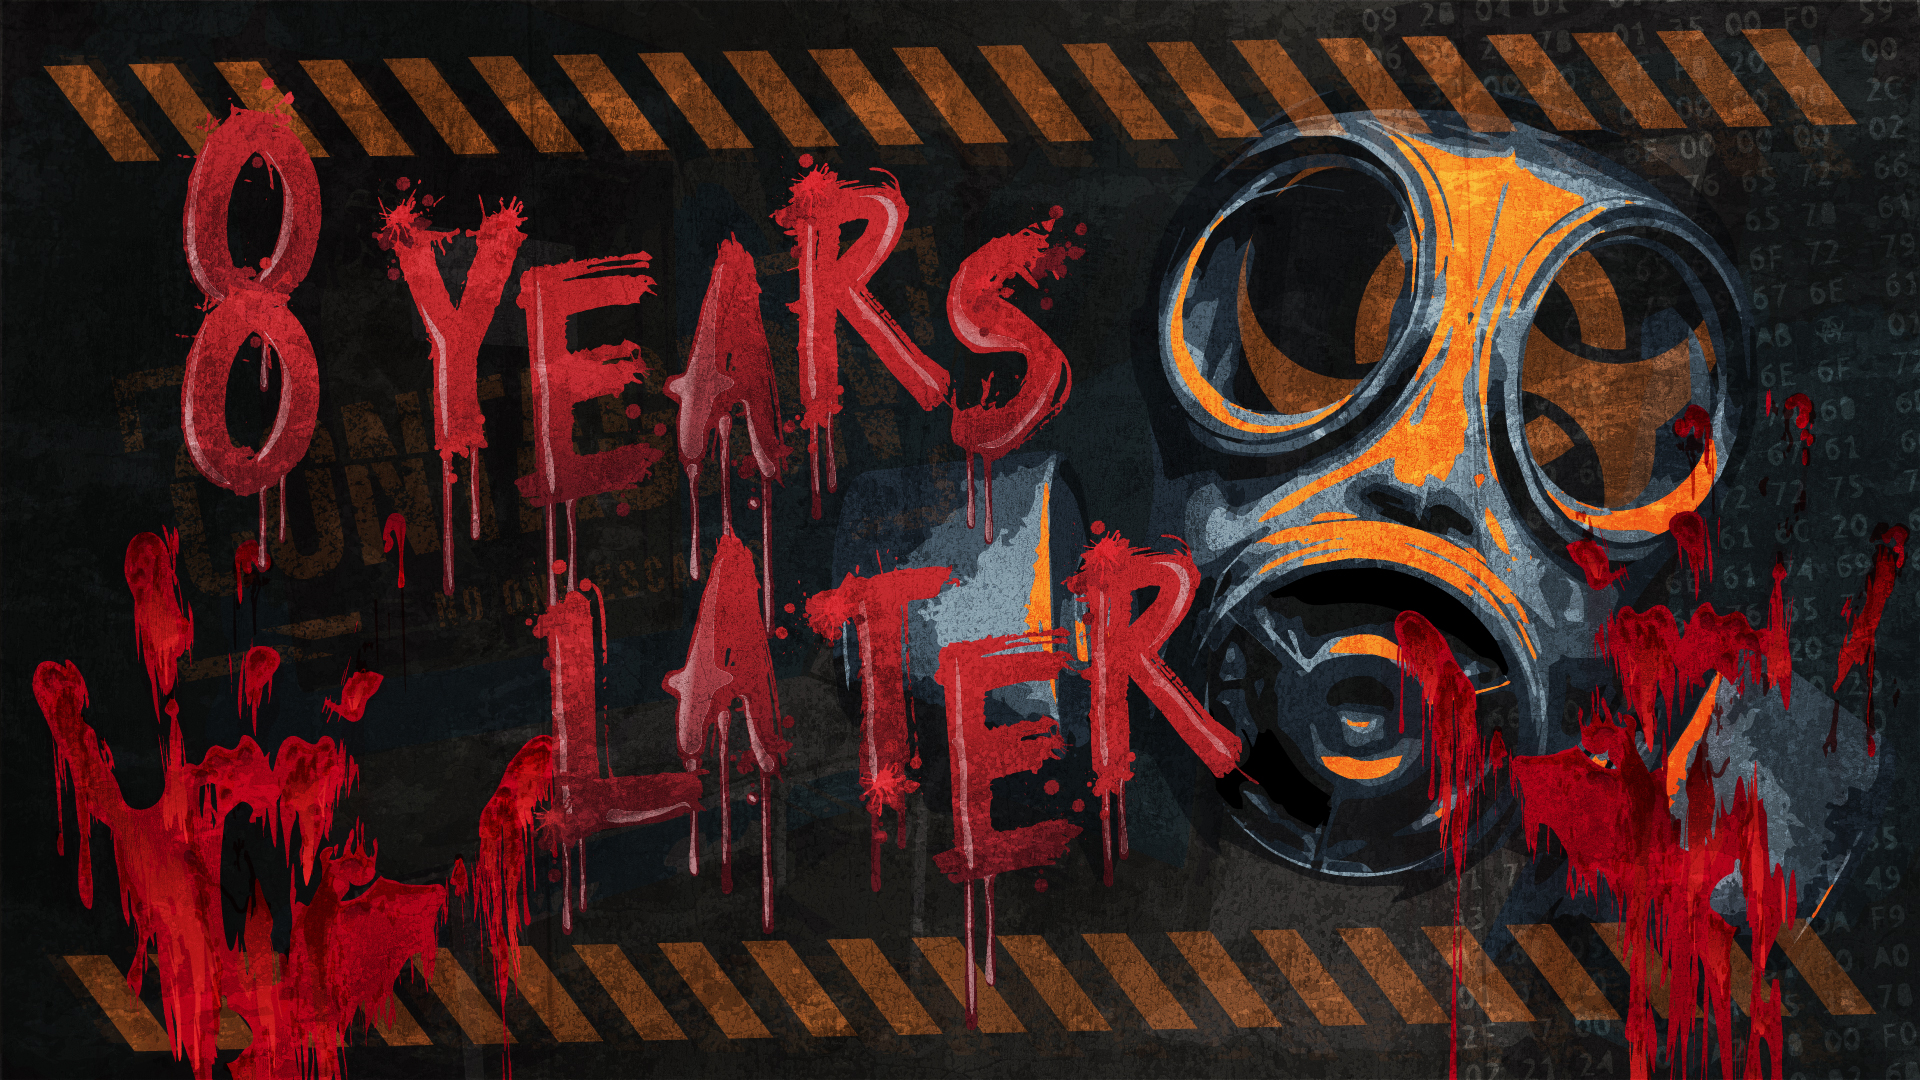 8 years later - AVAILABLE AT HAYMARKET:8 years ago we failed to contain the virus, resulting in the death of 98% of the human population. In a last ditch attempt your group has returned to the lab where the virus originated in a desperate attempt to solve humanities troubles. With the infected at the door will you have enough time to complete your mission or perish trying.